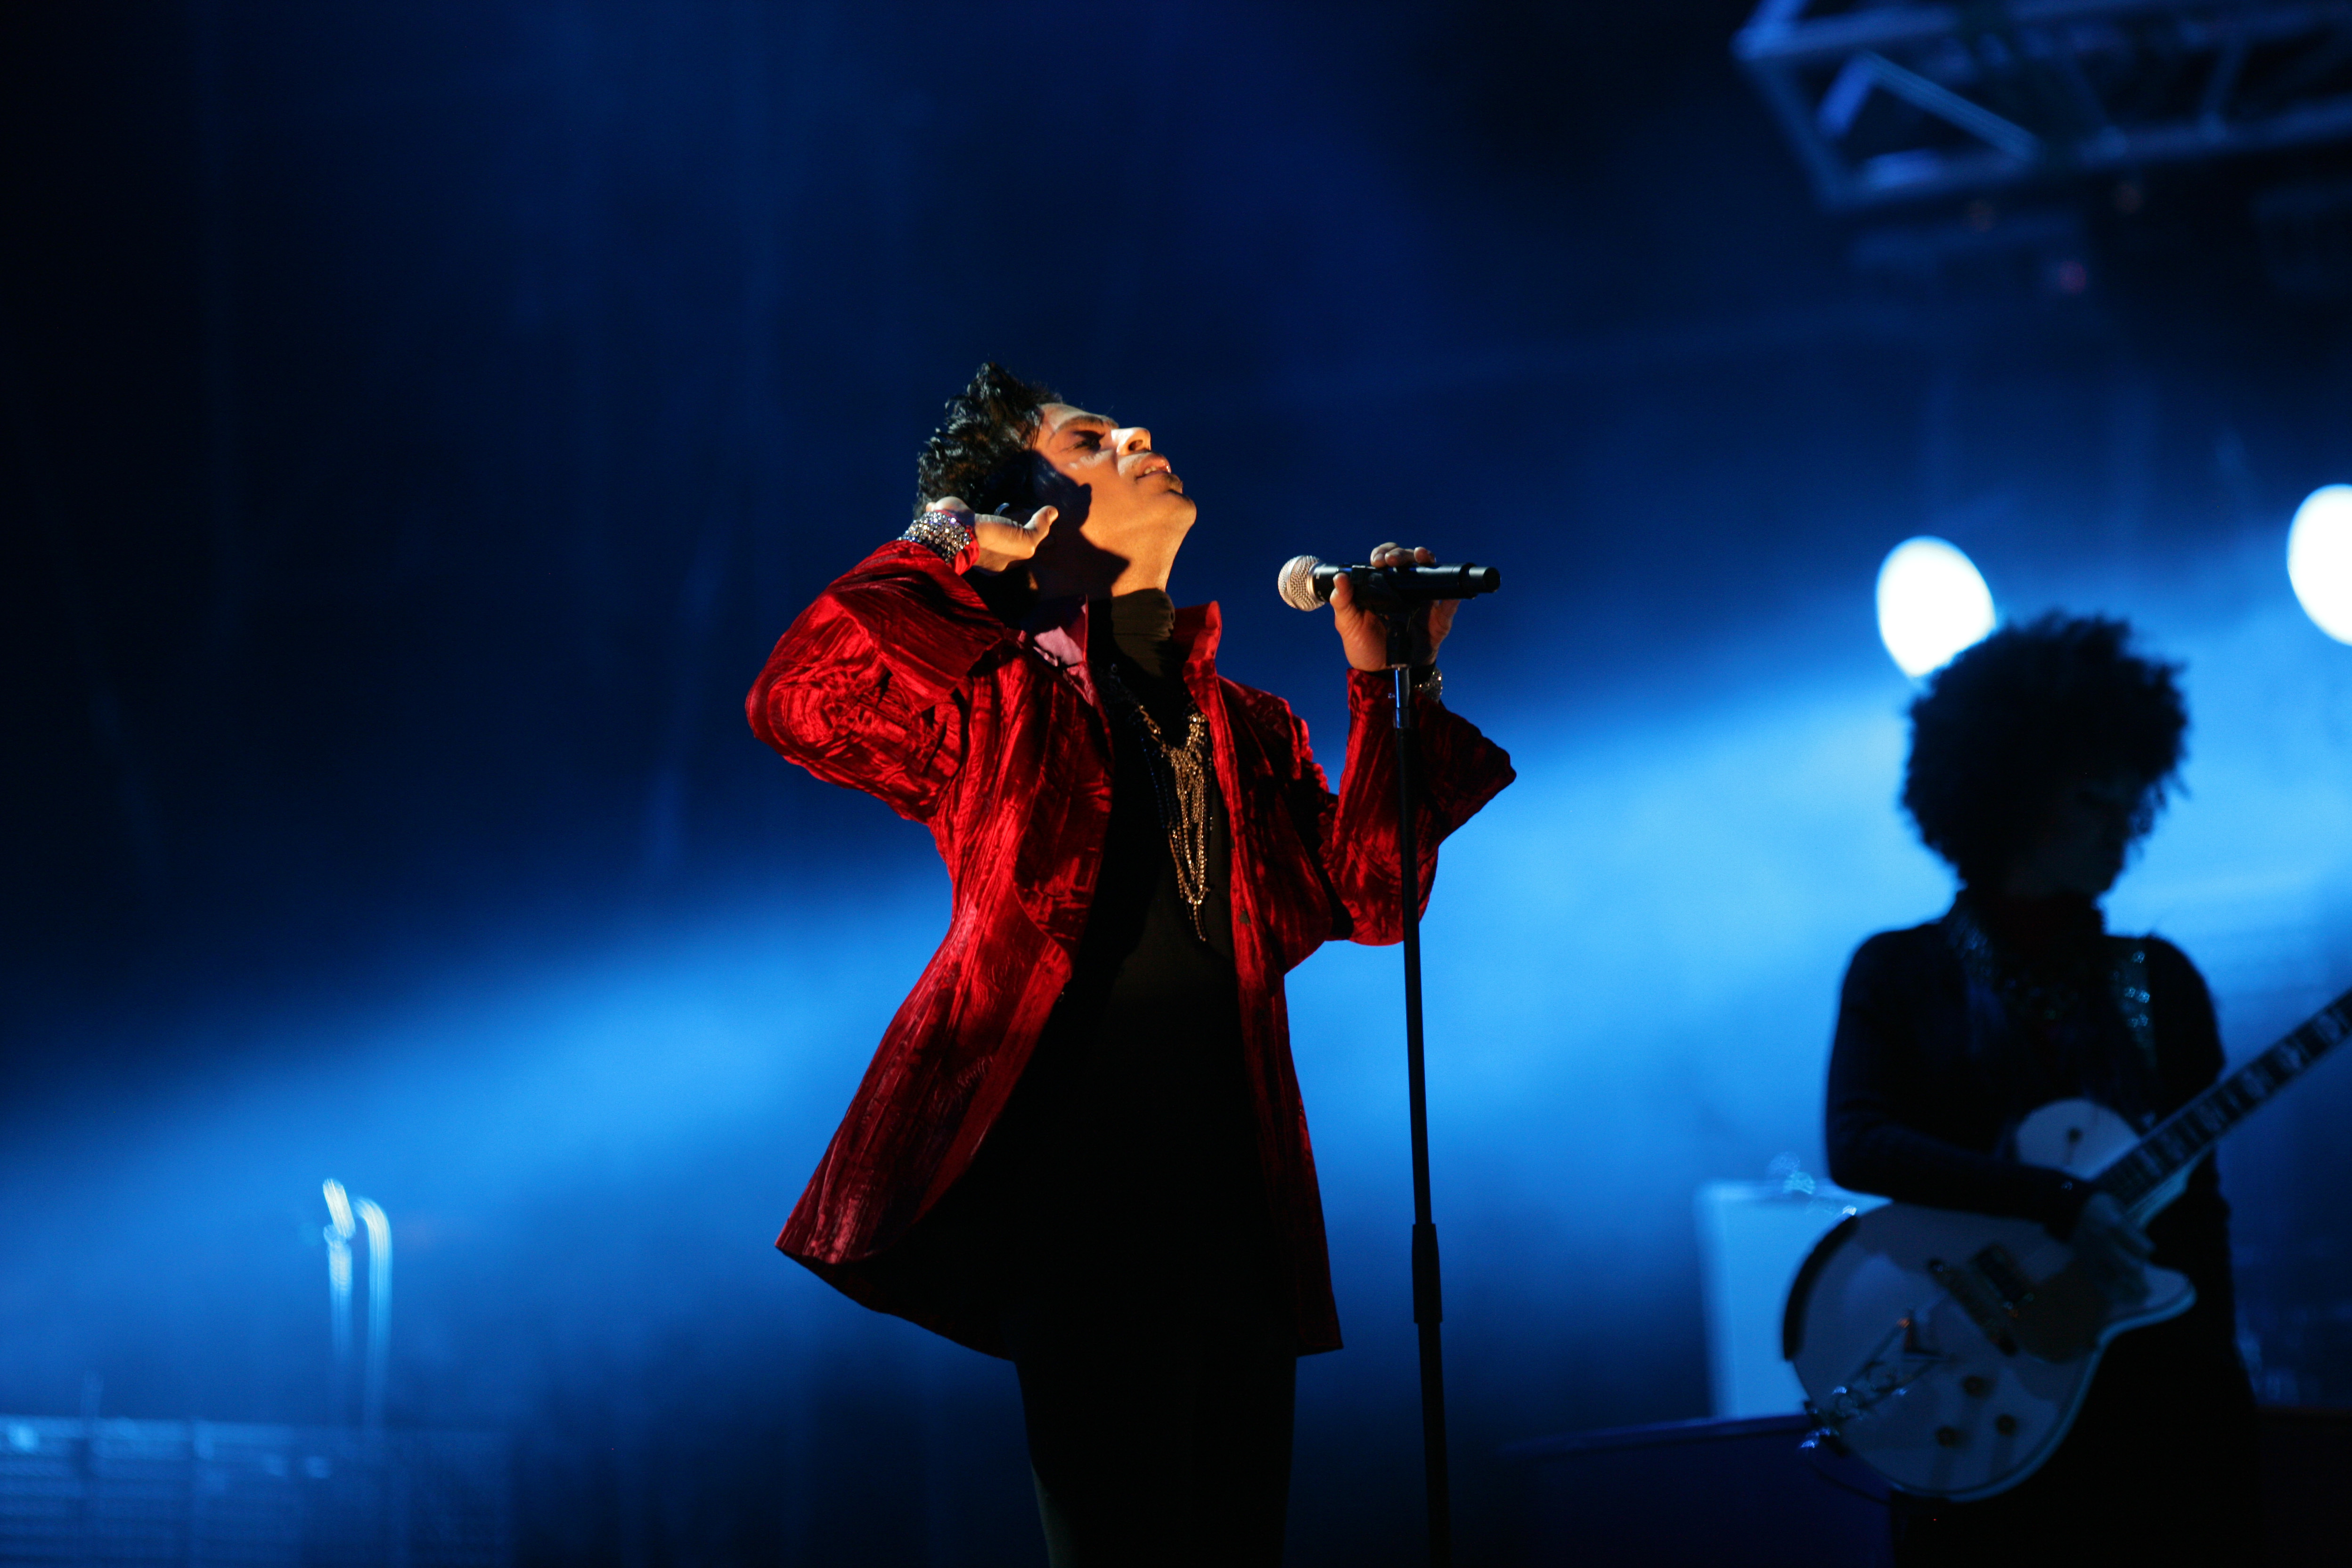 Luke Rehbein, Associate Director at Dawn Ellmore Employment, on the story of howa photographer is taking on Prince's estate over copyright infringement